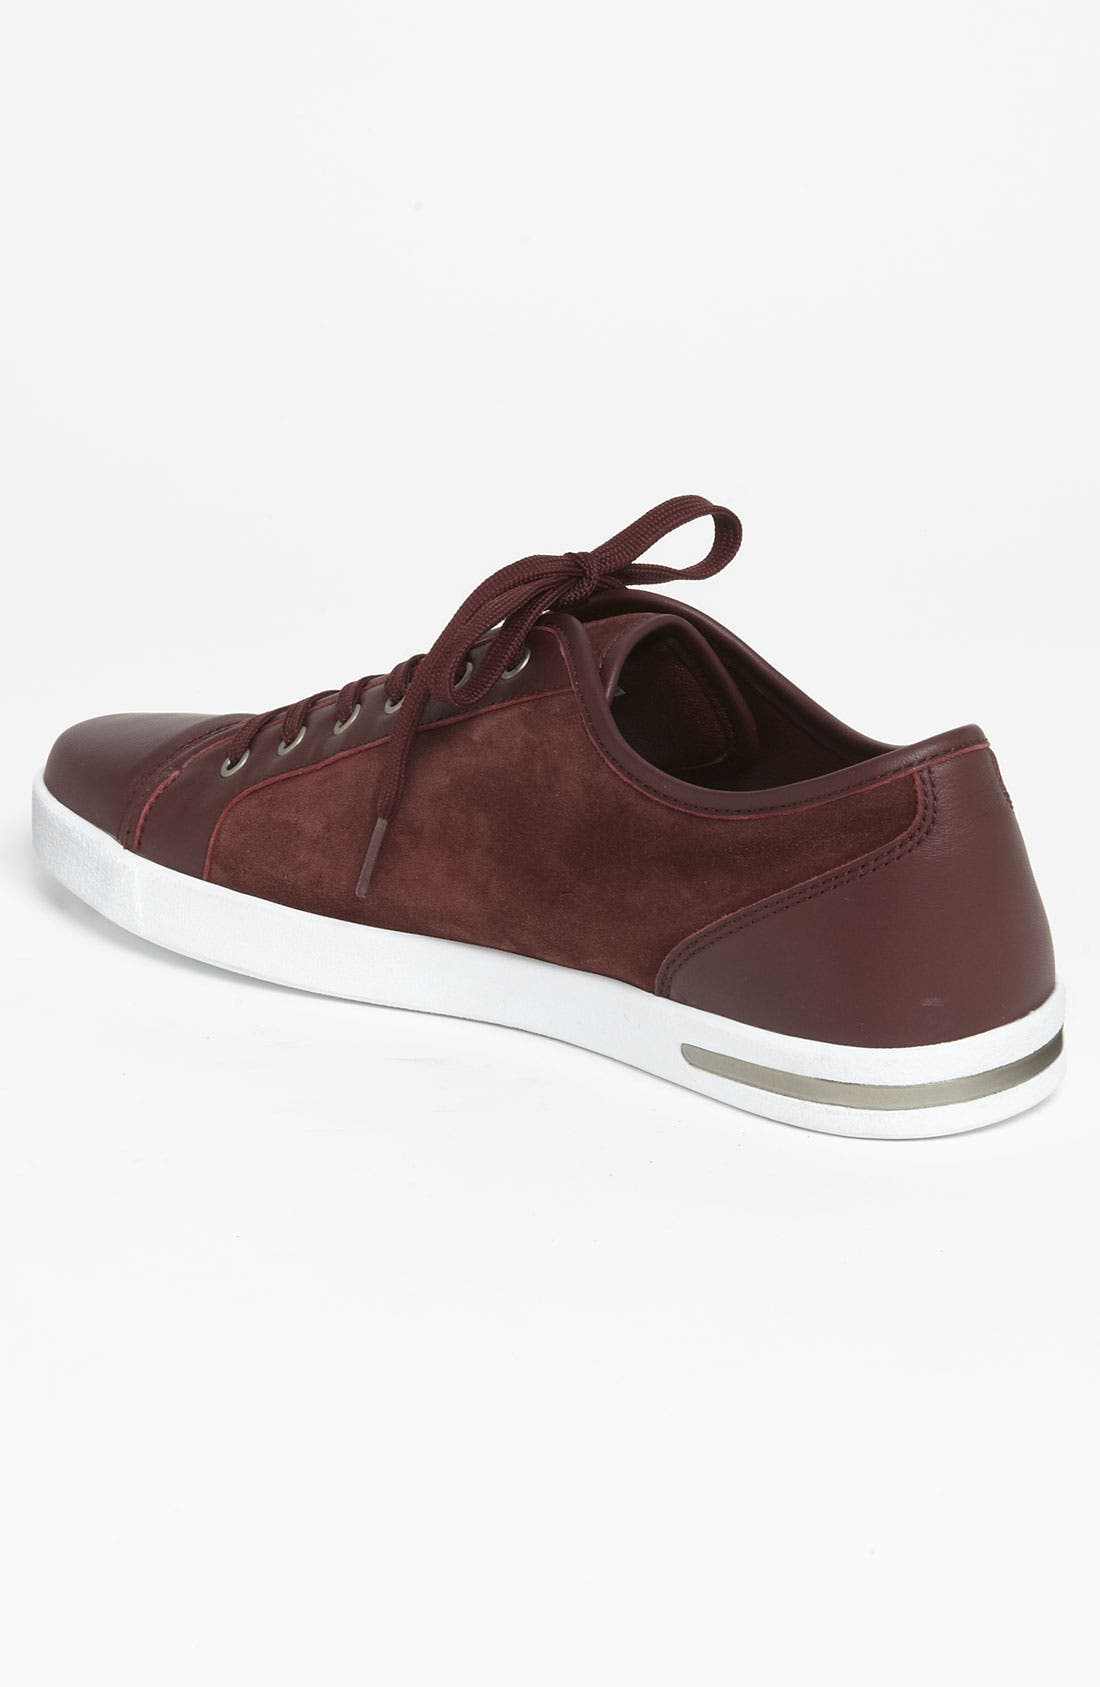 Suede Sneaker,                             Alternate thumbnail 2, color,                             Red Suede